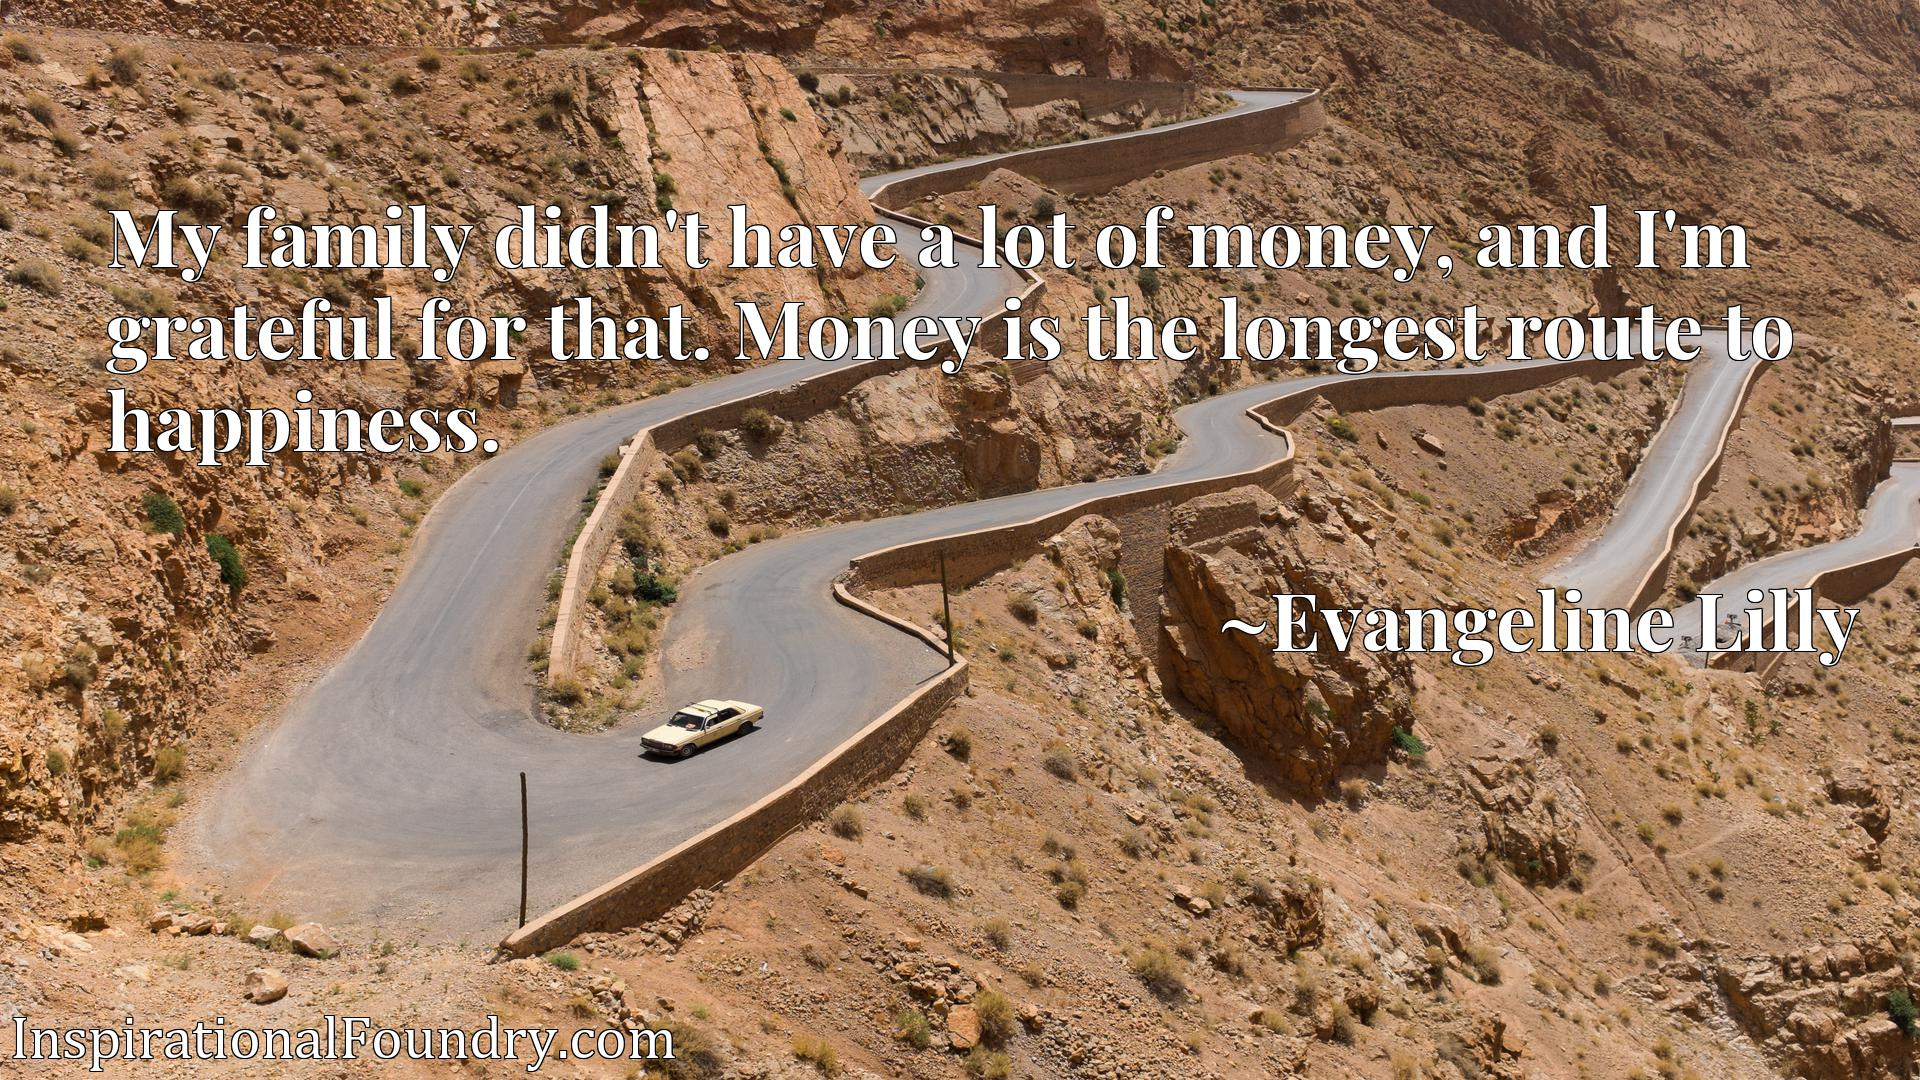 Quote Picture :My family didn't have a lot of money, and I'm grateful for that. Money is the longest route to happiness.